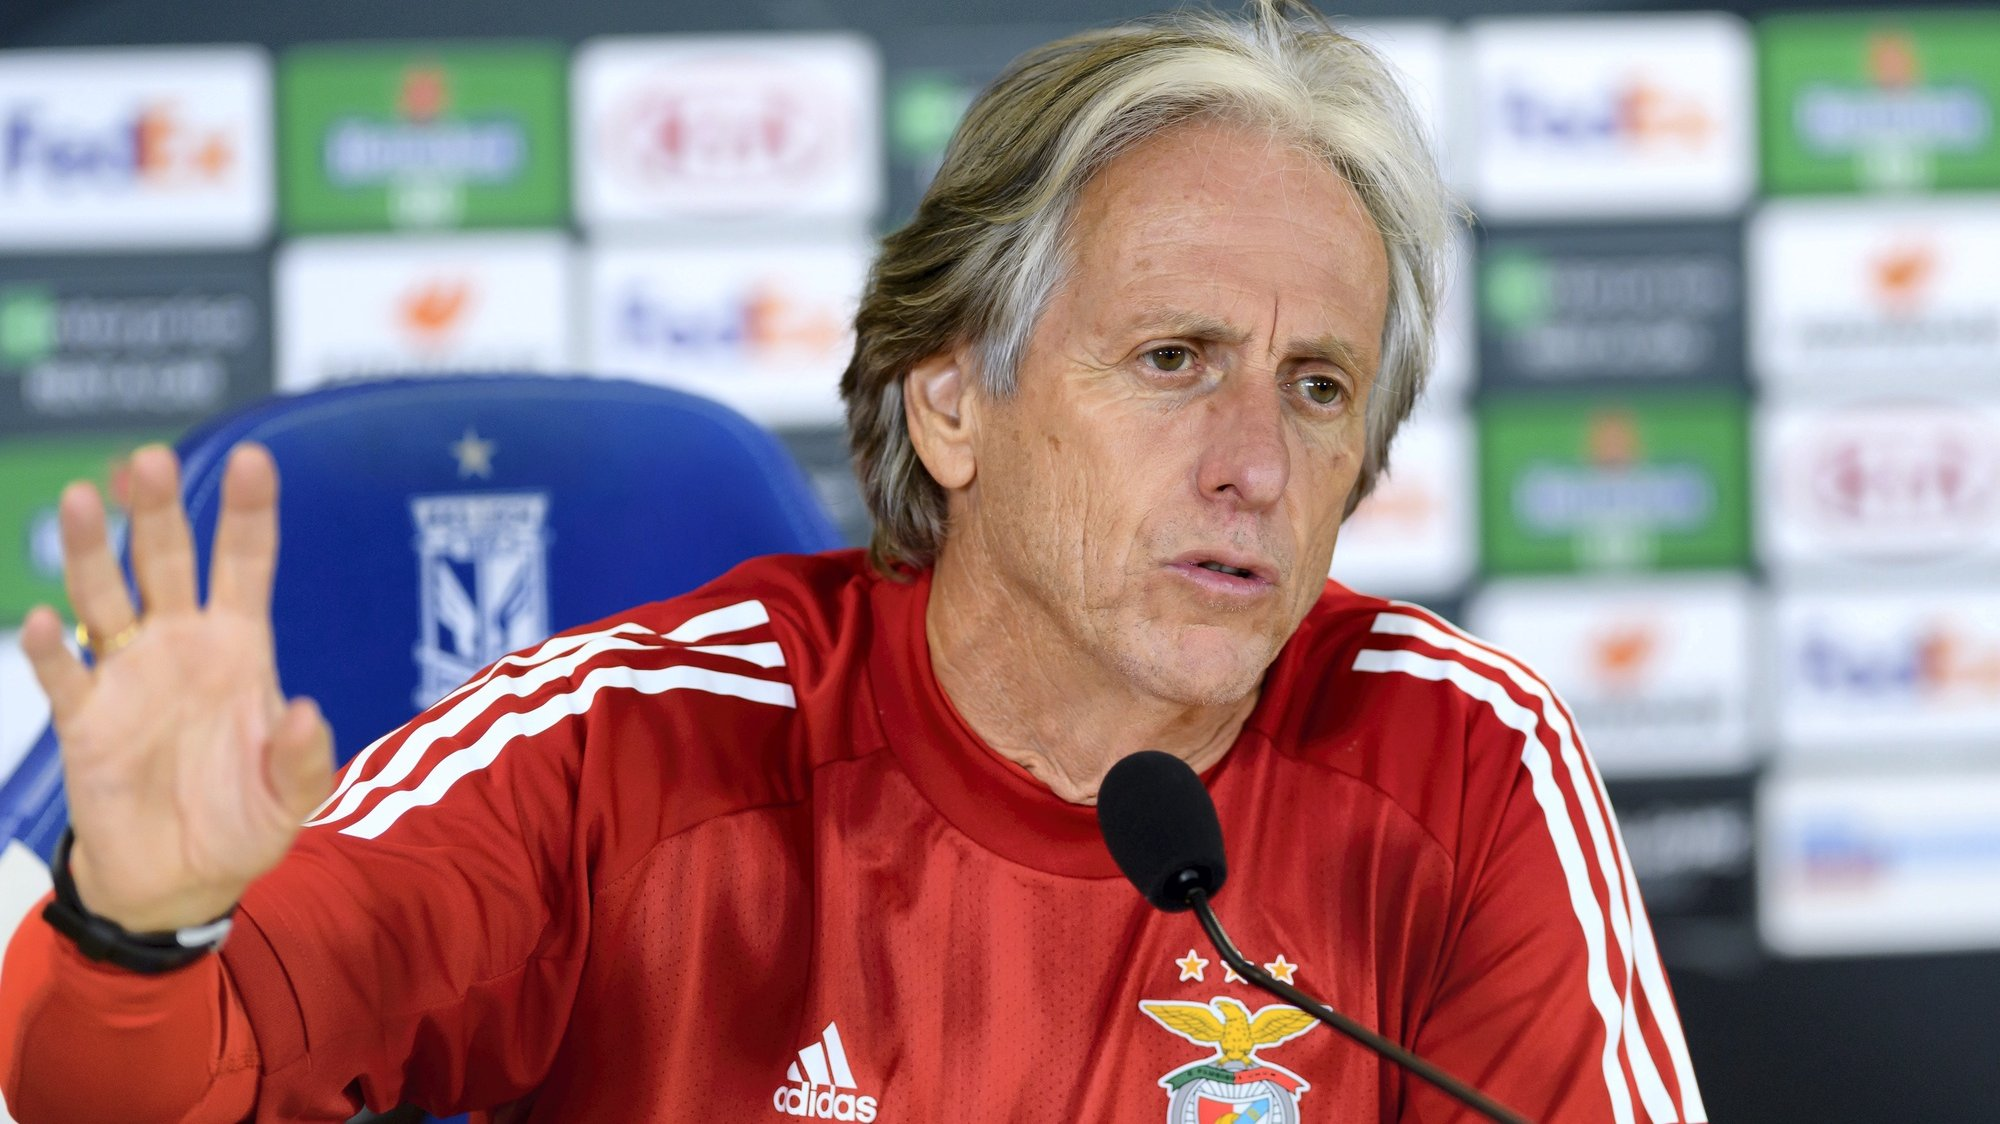 epa08762695 SL Benfica's head coach Jorge Jesus during a press conference in Poznan, central Poland, 21 October 2020. SL Benfica faces Lech Poznan for an UEFA Europa League group D match on 22 October in Poznan.  EPA/Jakub Kaczmarczyk POLAND OUT